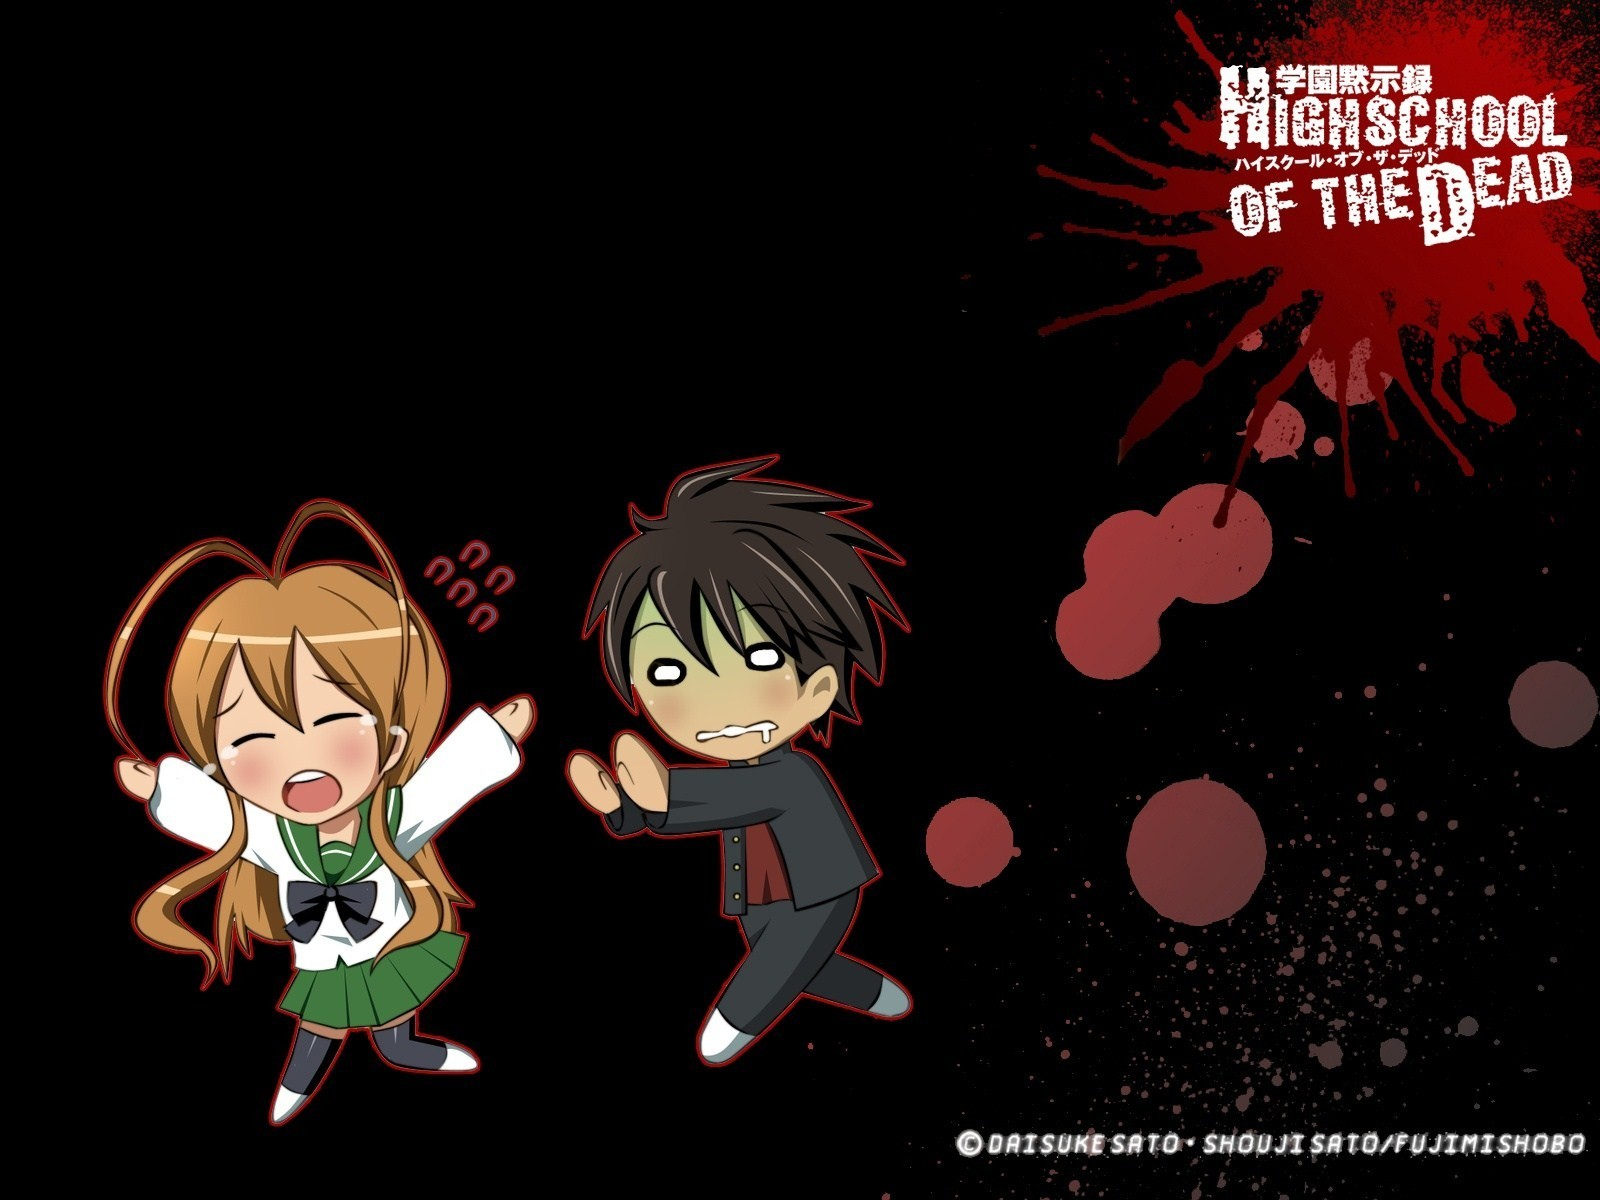 blood zombies Chibi highschool HD Wallpaper